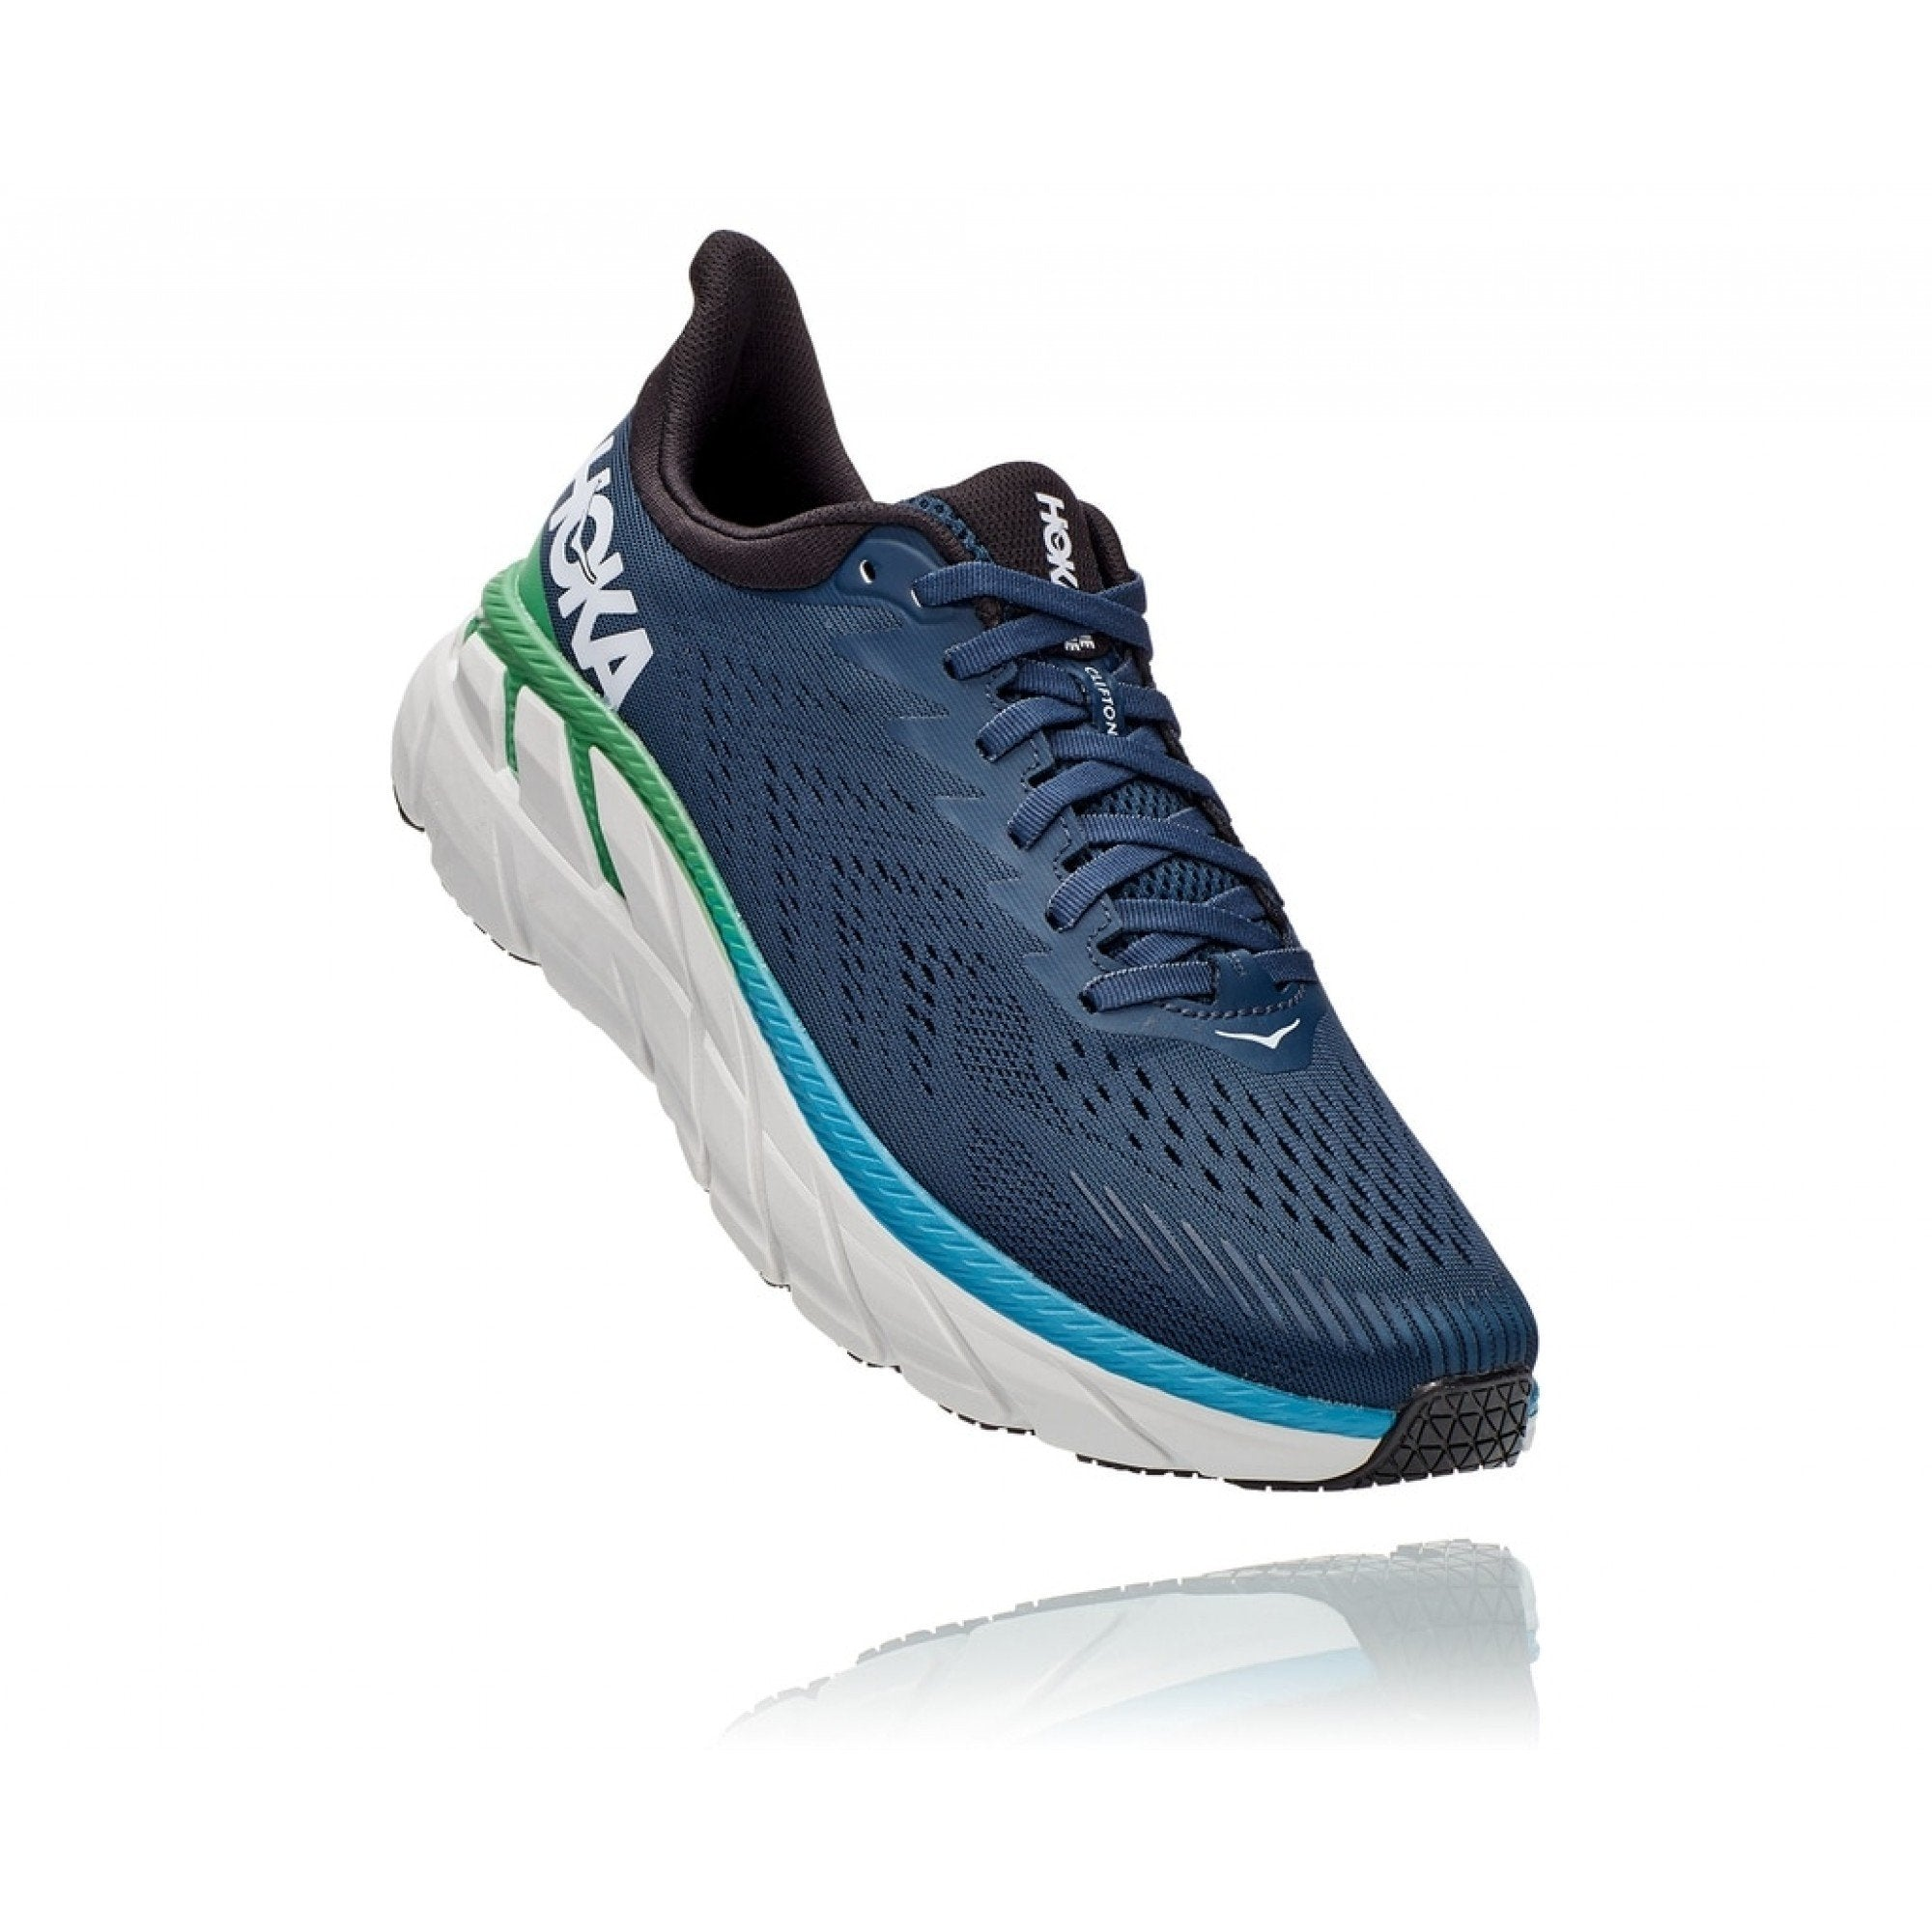 Hoka One One Clifton 7 Mens 2E Wide - Sole Motive